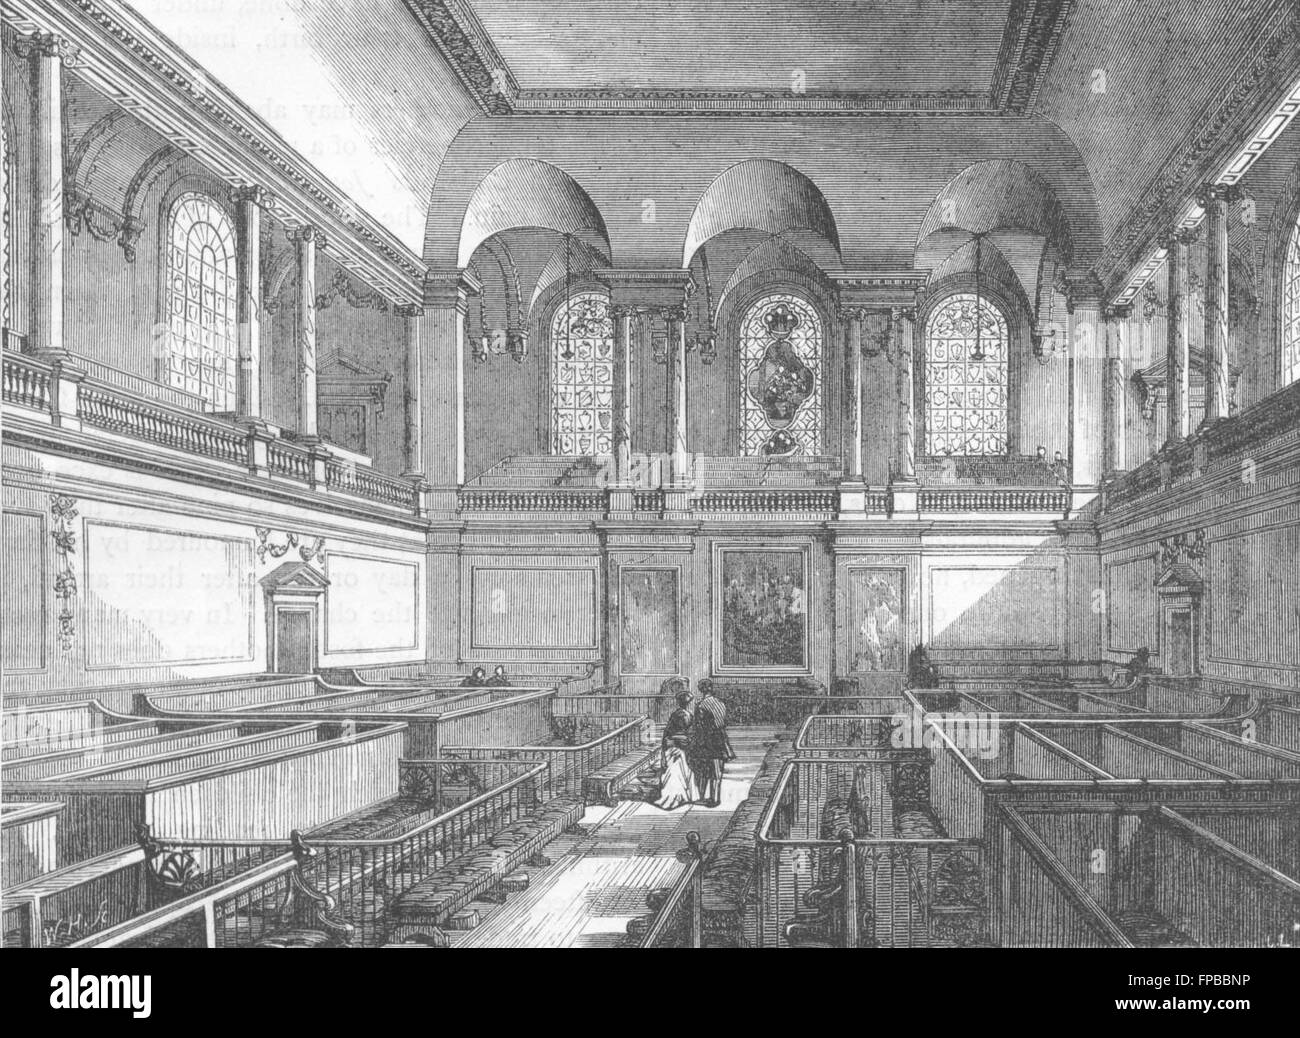 Thank for London foundling hospital join. was